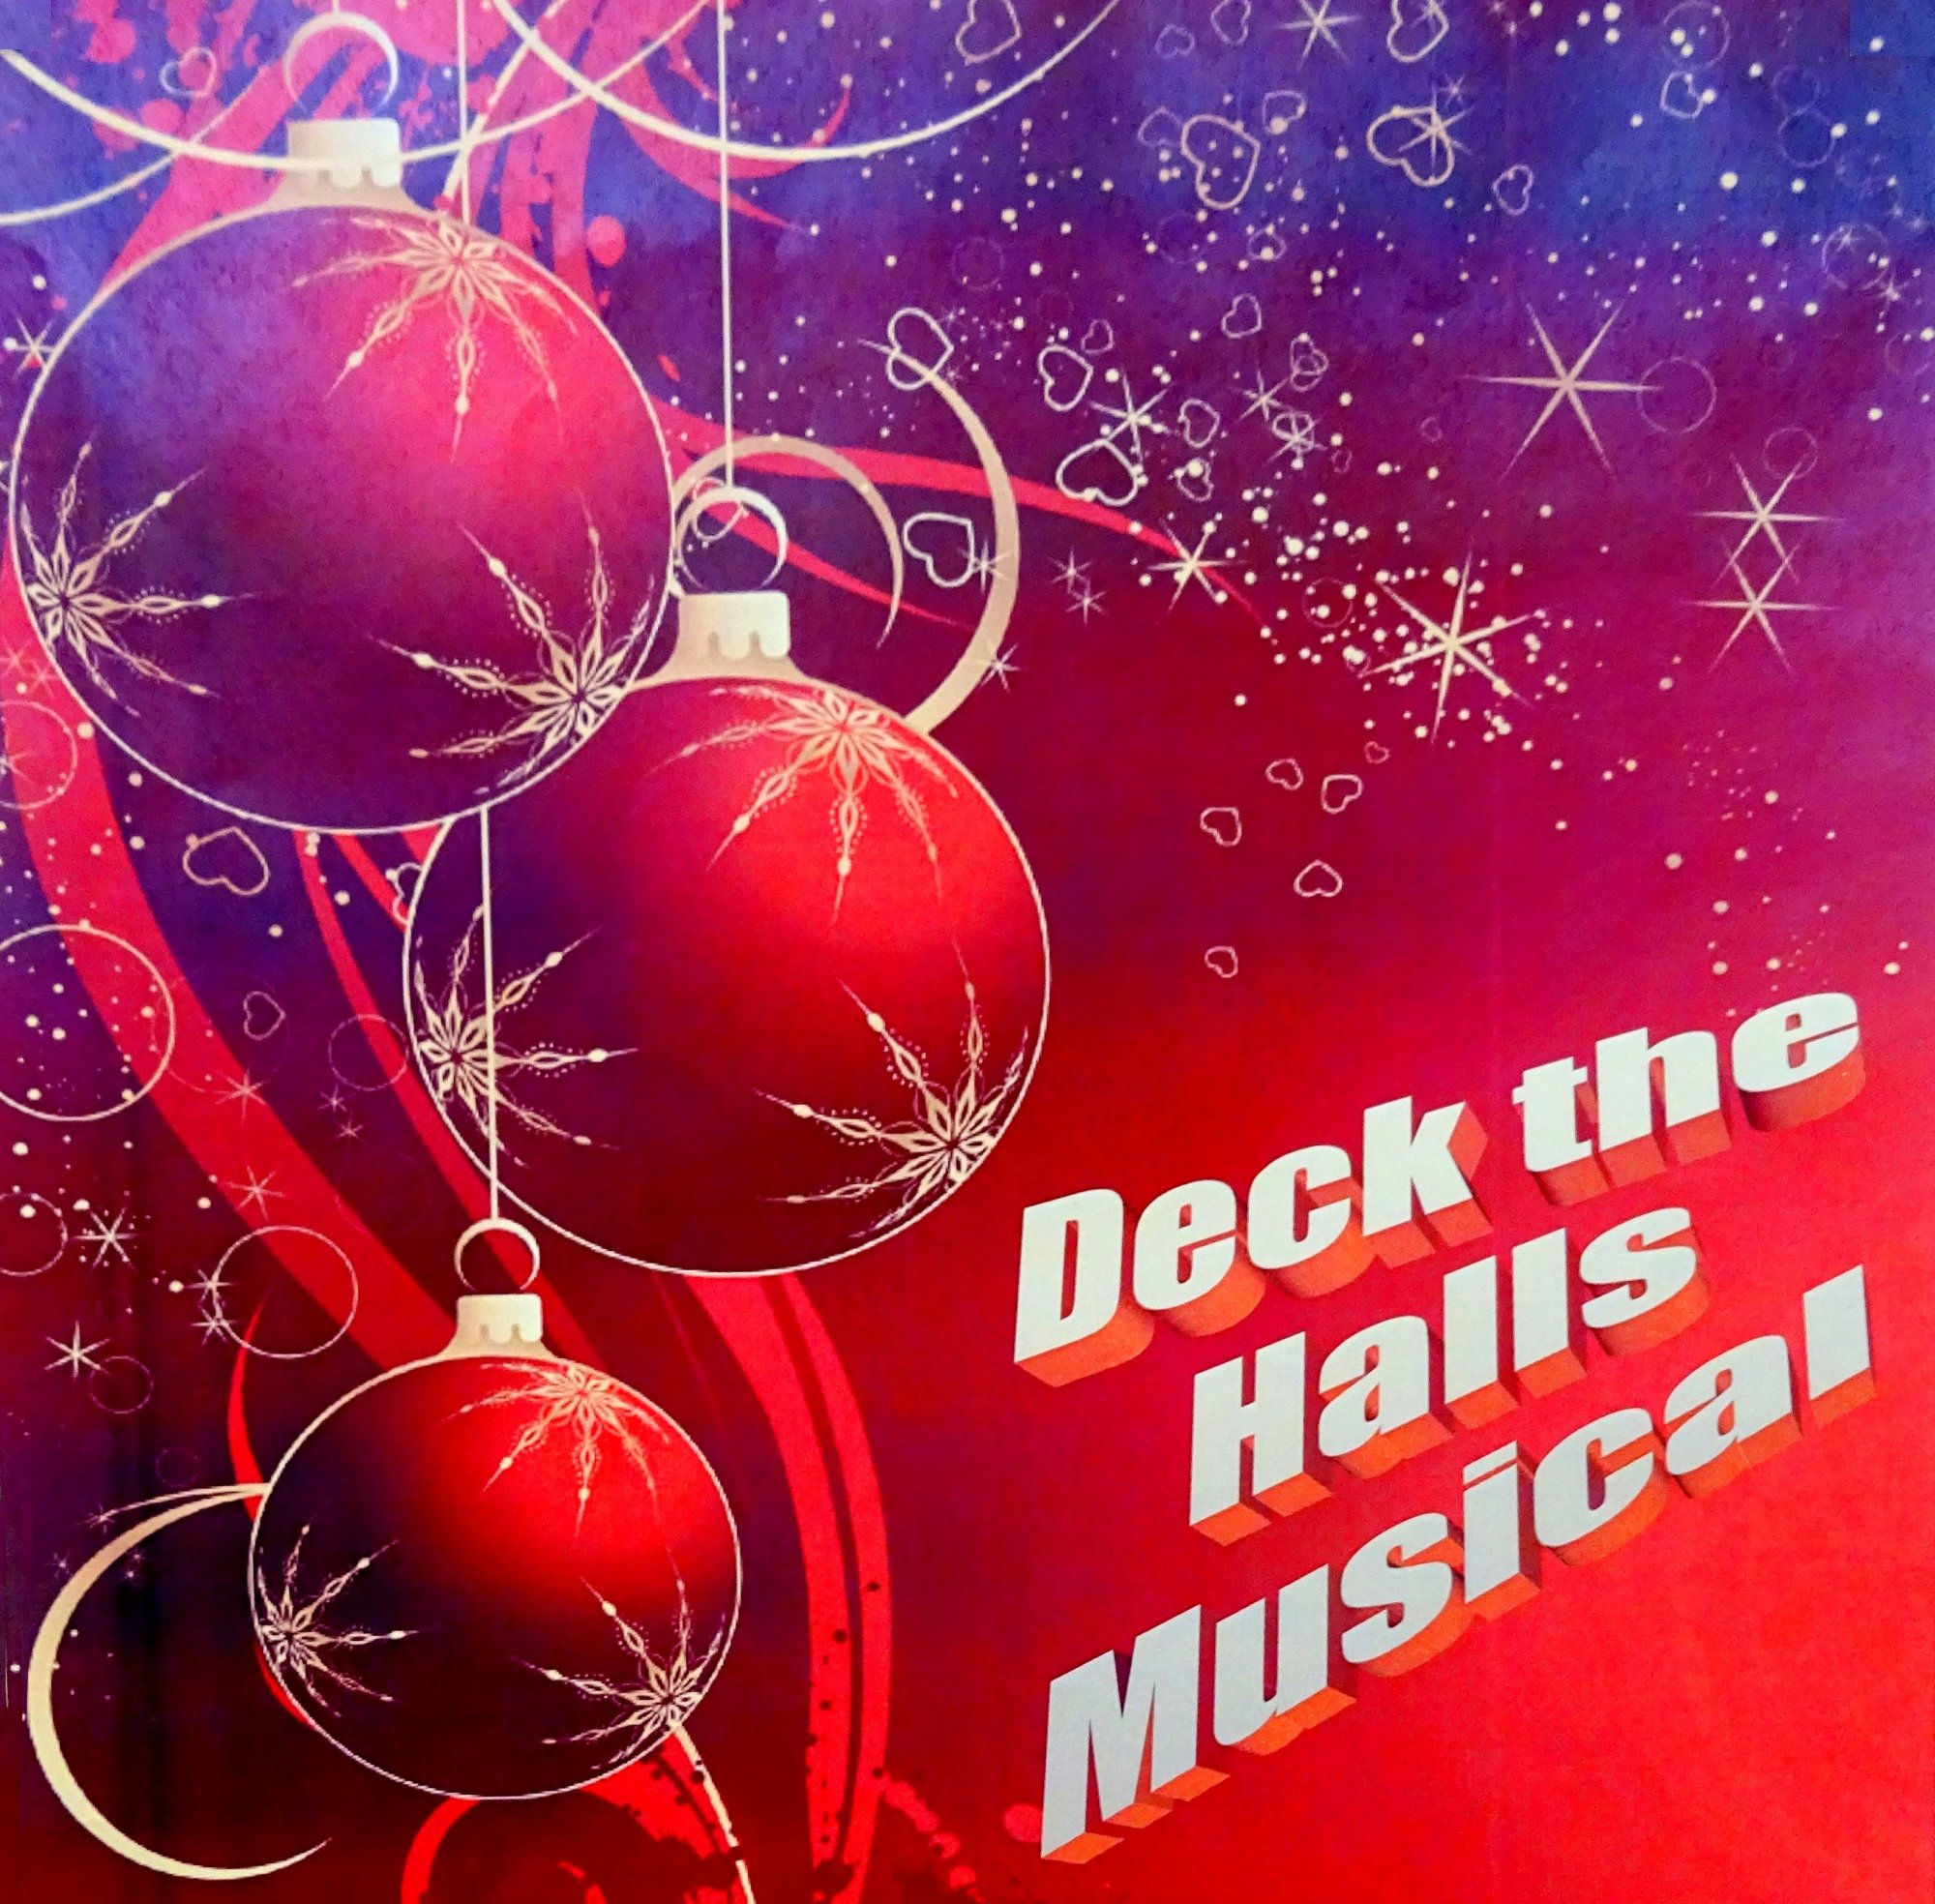 Deck the Hall Musical image from bydewey.com Deck the Halls Musical performance at VIVA Mississauga 2015